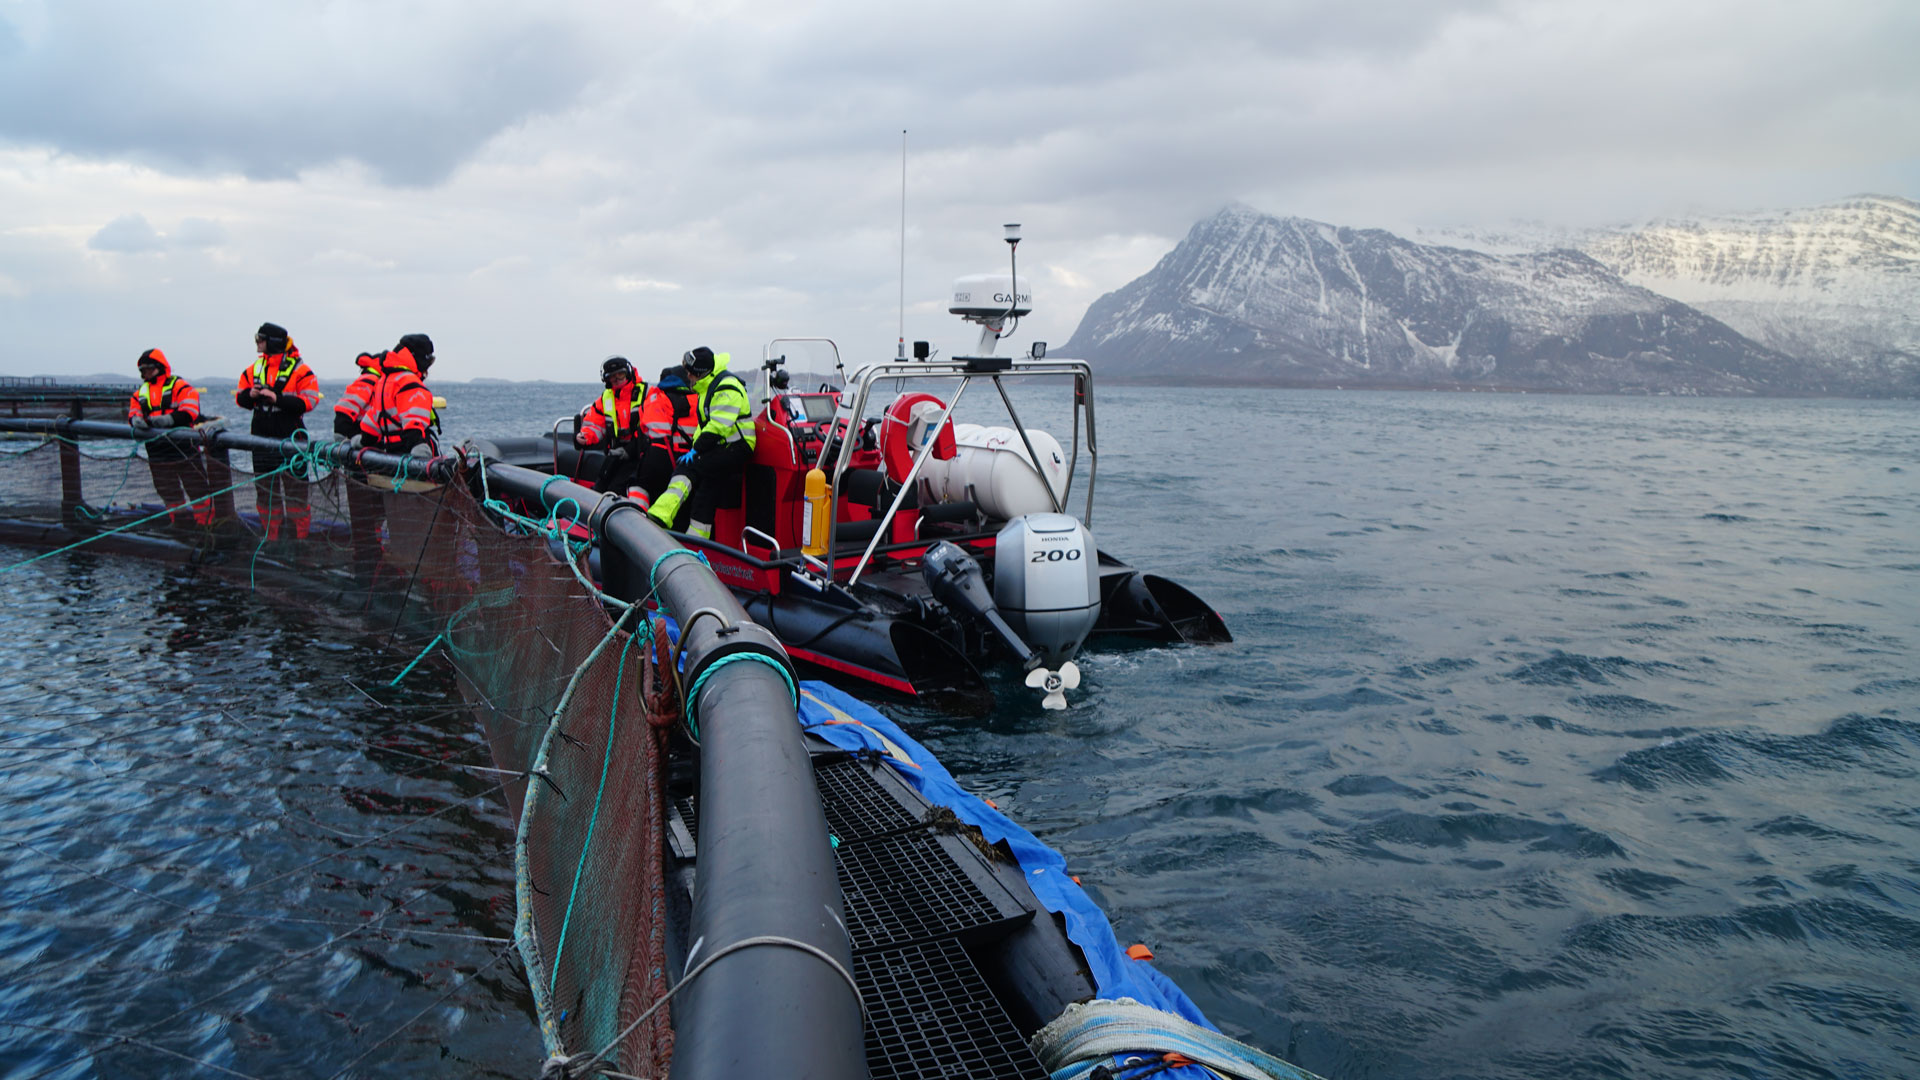 motorboat with people at sea with mountains in background